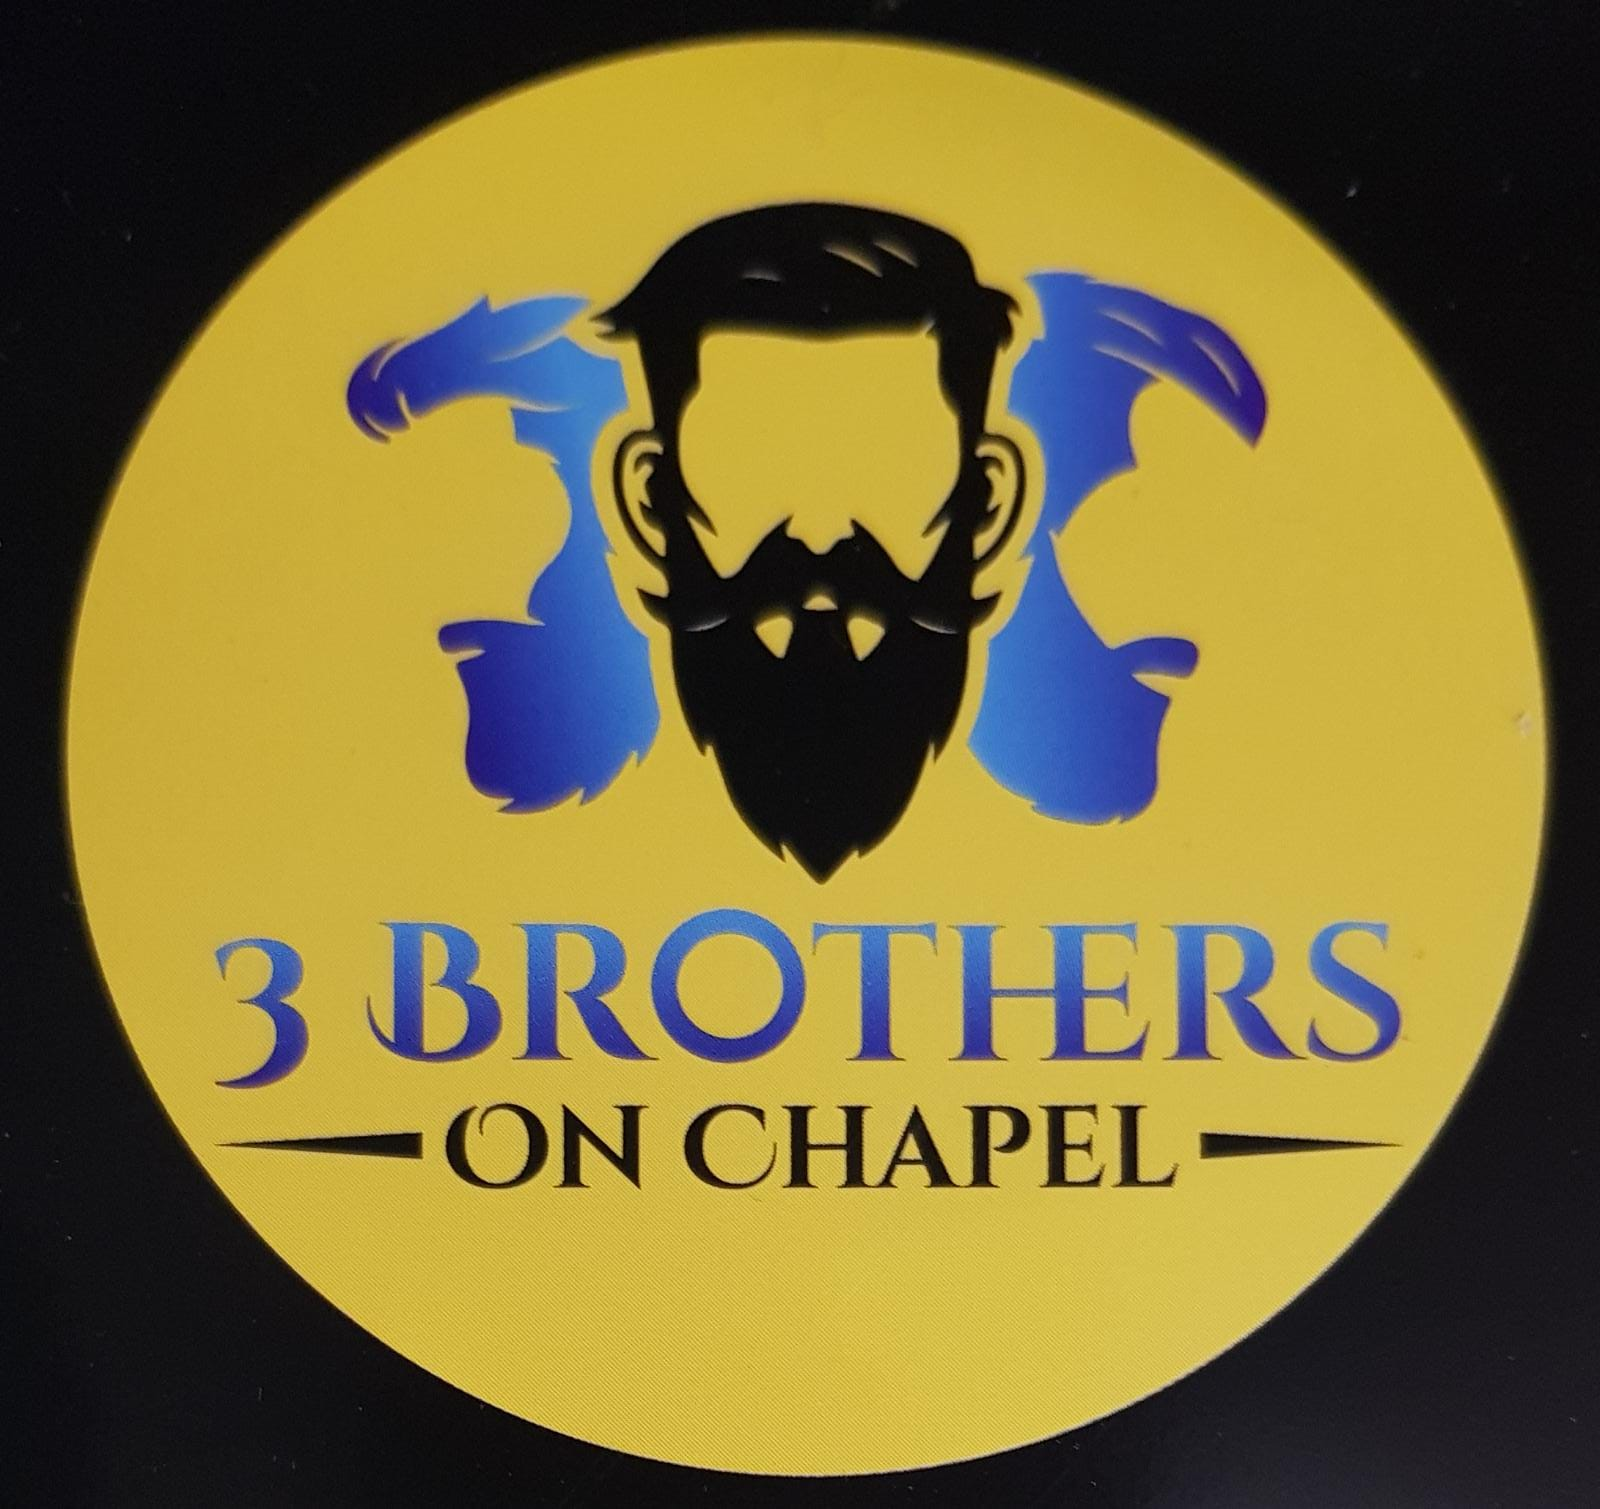 3 brothers on chappel